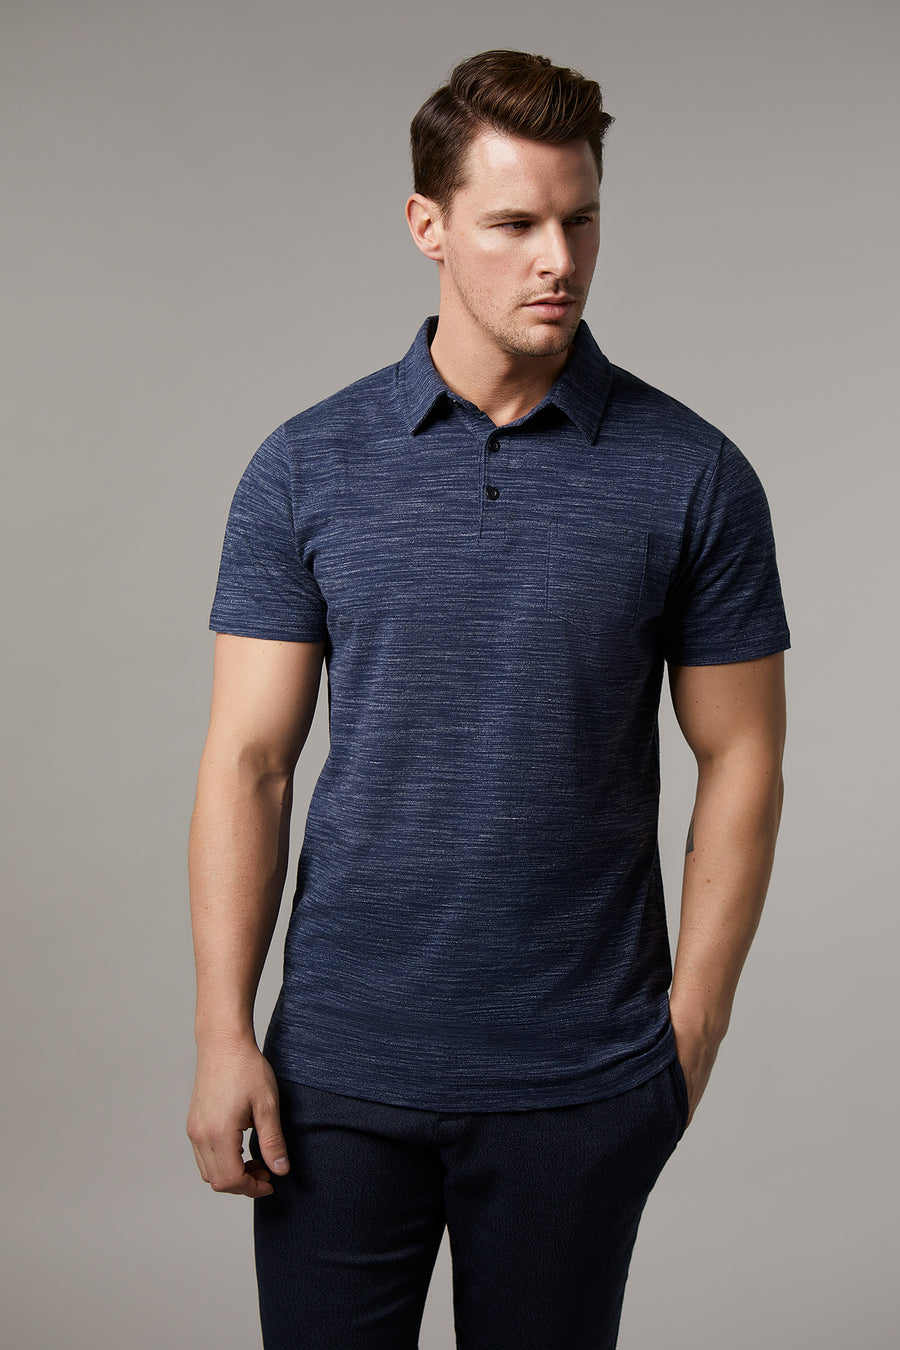 Johnny Cotton Melange Navy Polo